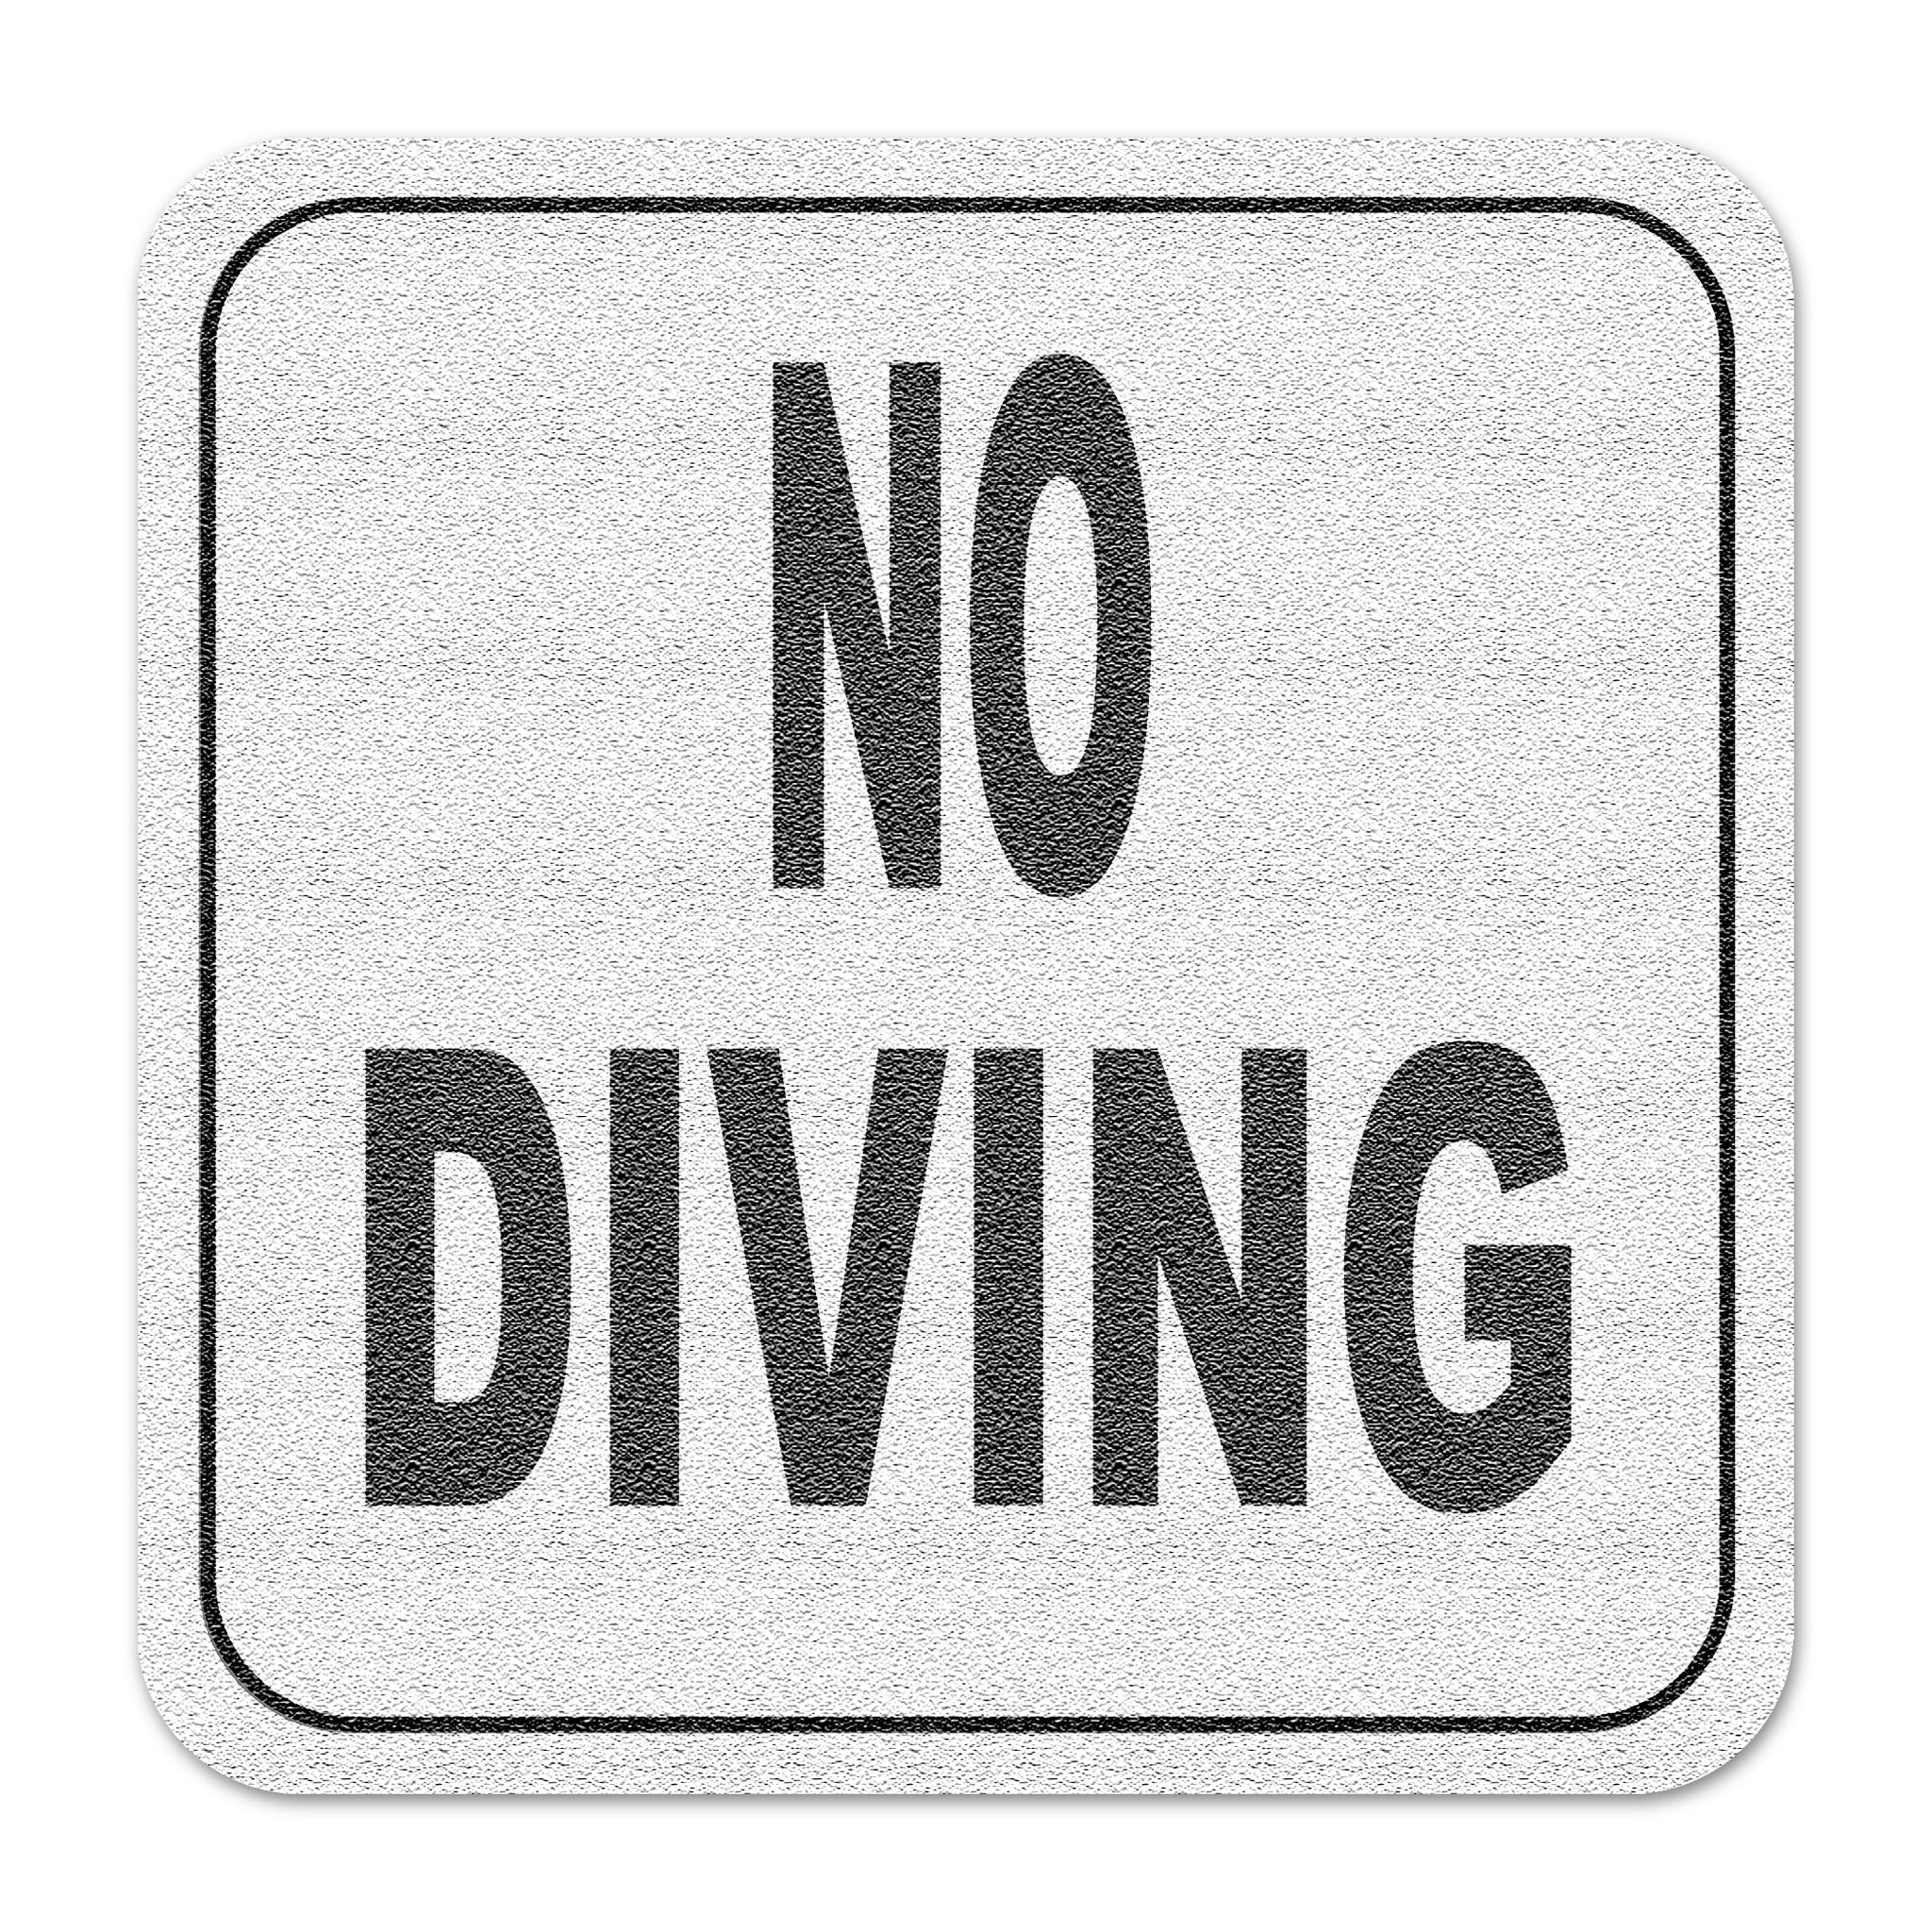 "Vinyl Depth Marker Decal 6X6 "" No Diving (Text Only)"" Abrasive Non Slip Finish"